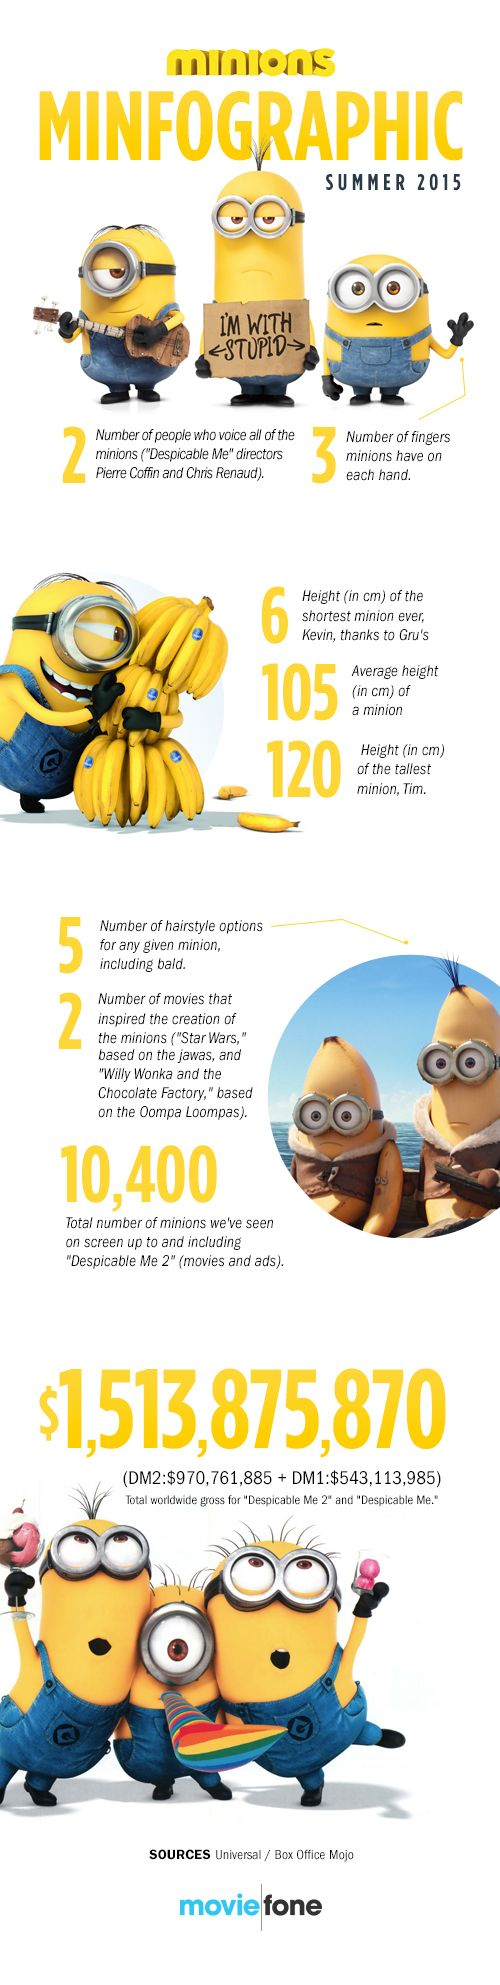 Minfographic: Minions Facts